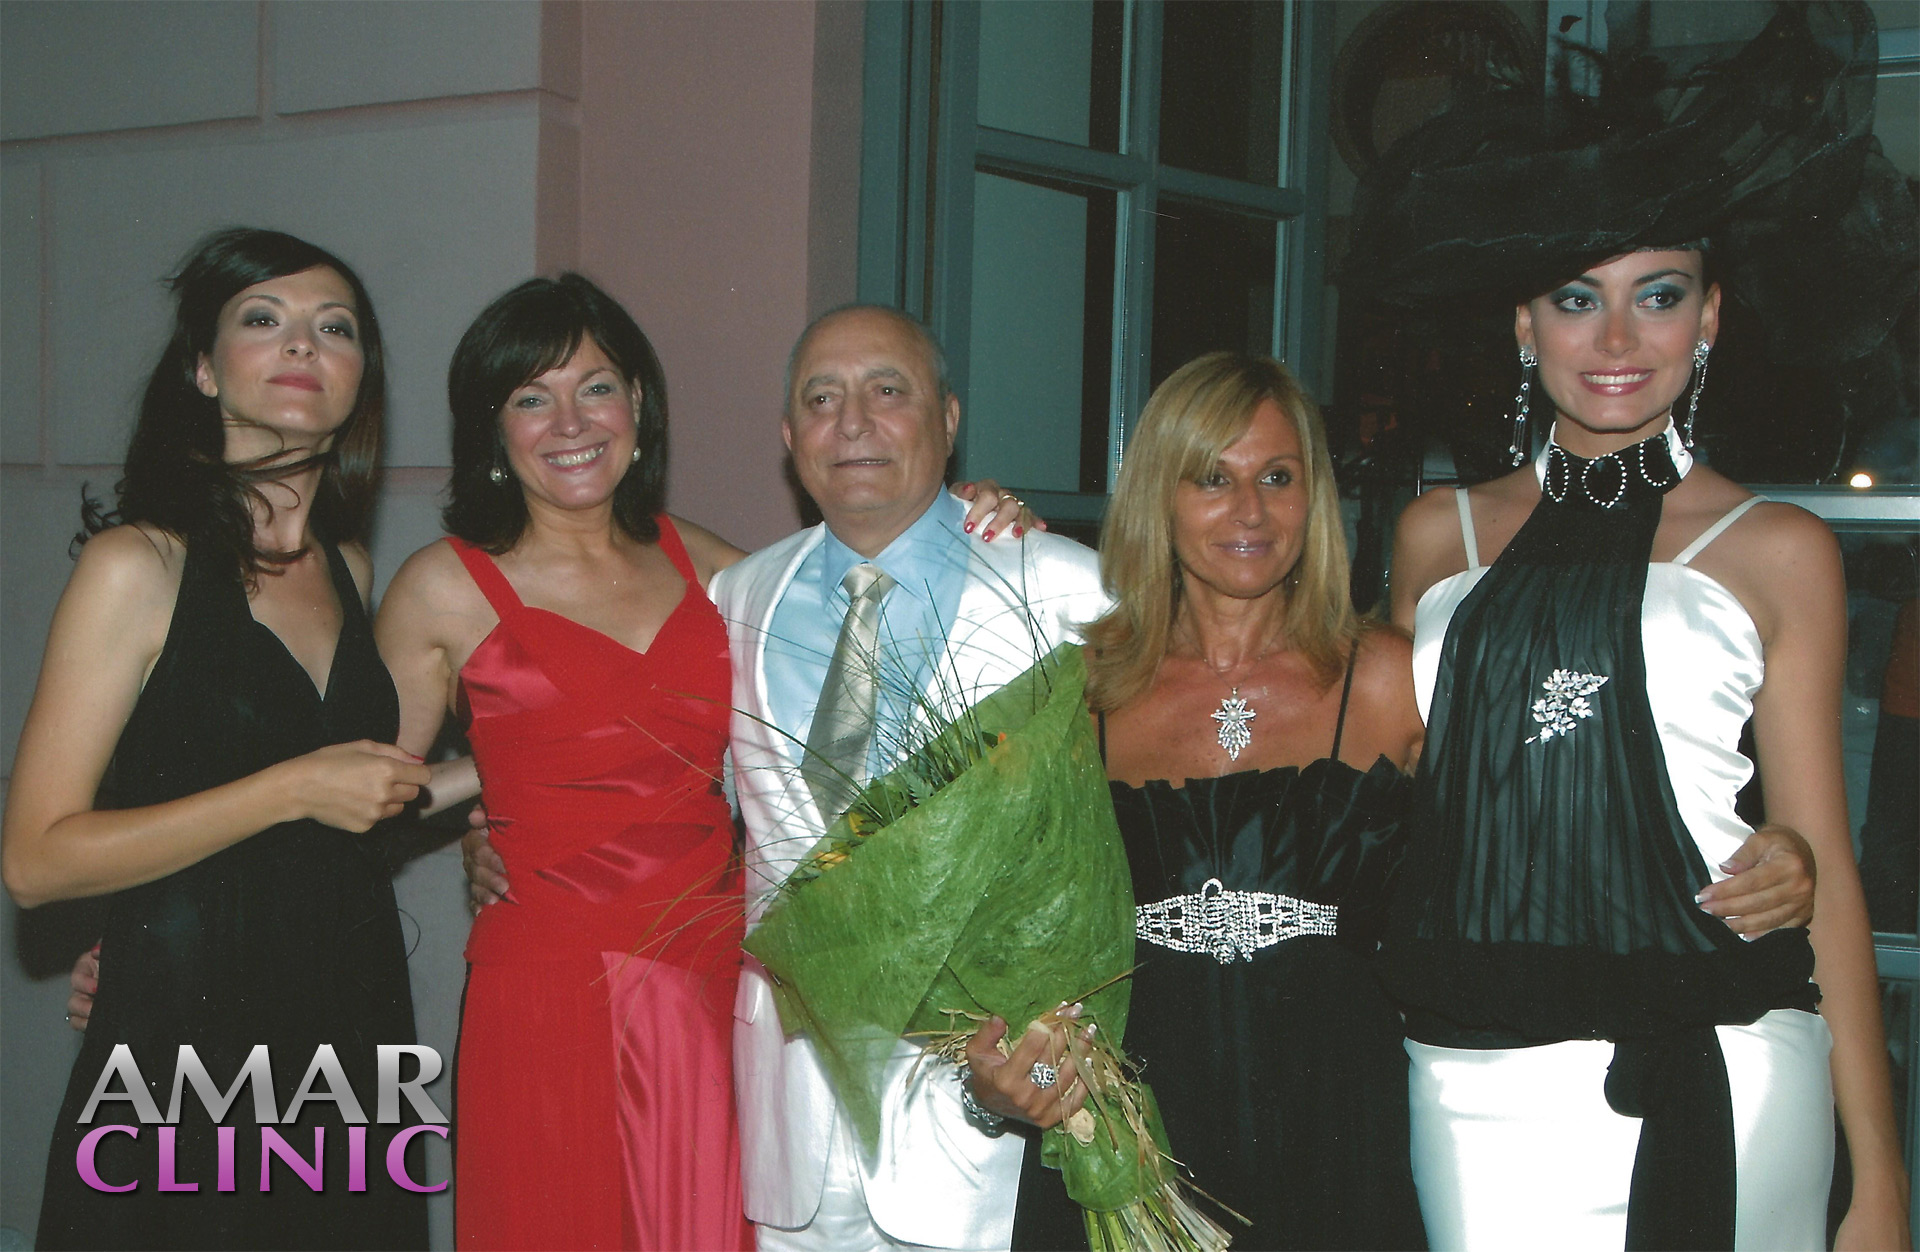 Renee Coppinger Patricia Nahmad Doctor Roger Amar Modelos Famosas